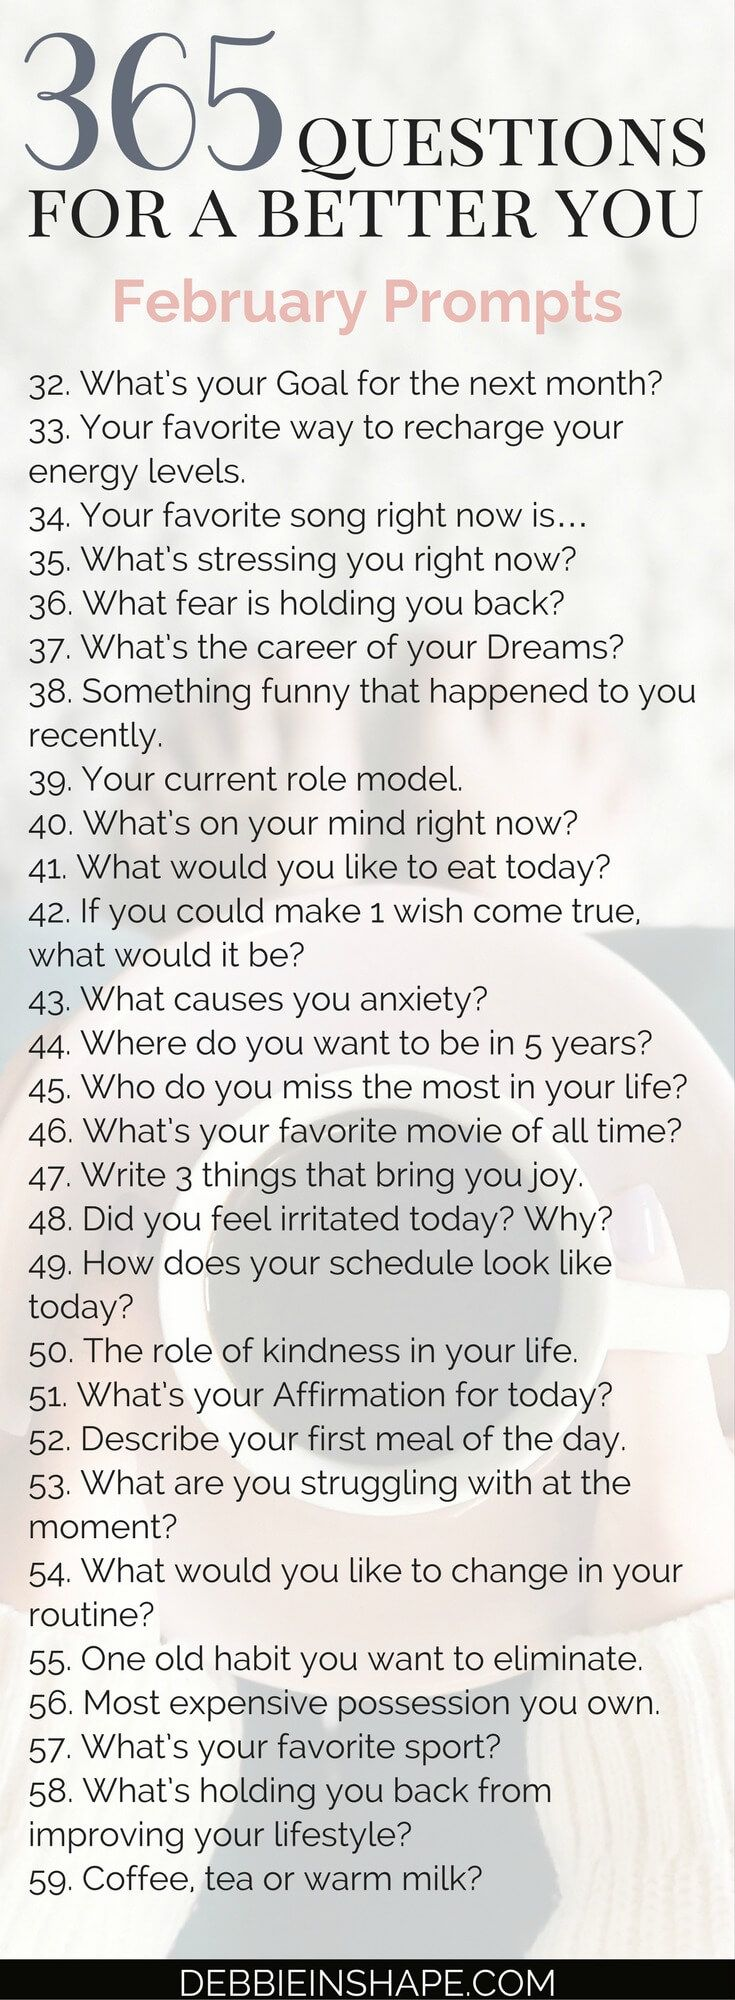 And it's already time for the 365 Questions For A Better You the February edition. Let's continue reflecting about ourselves to grow and improve.